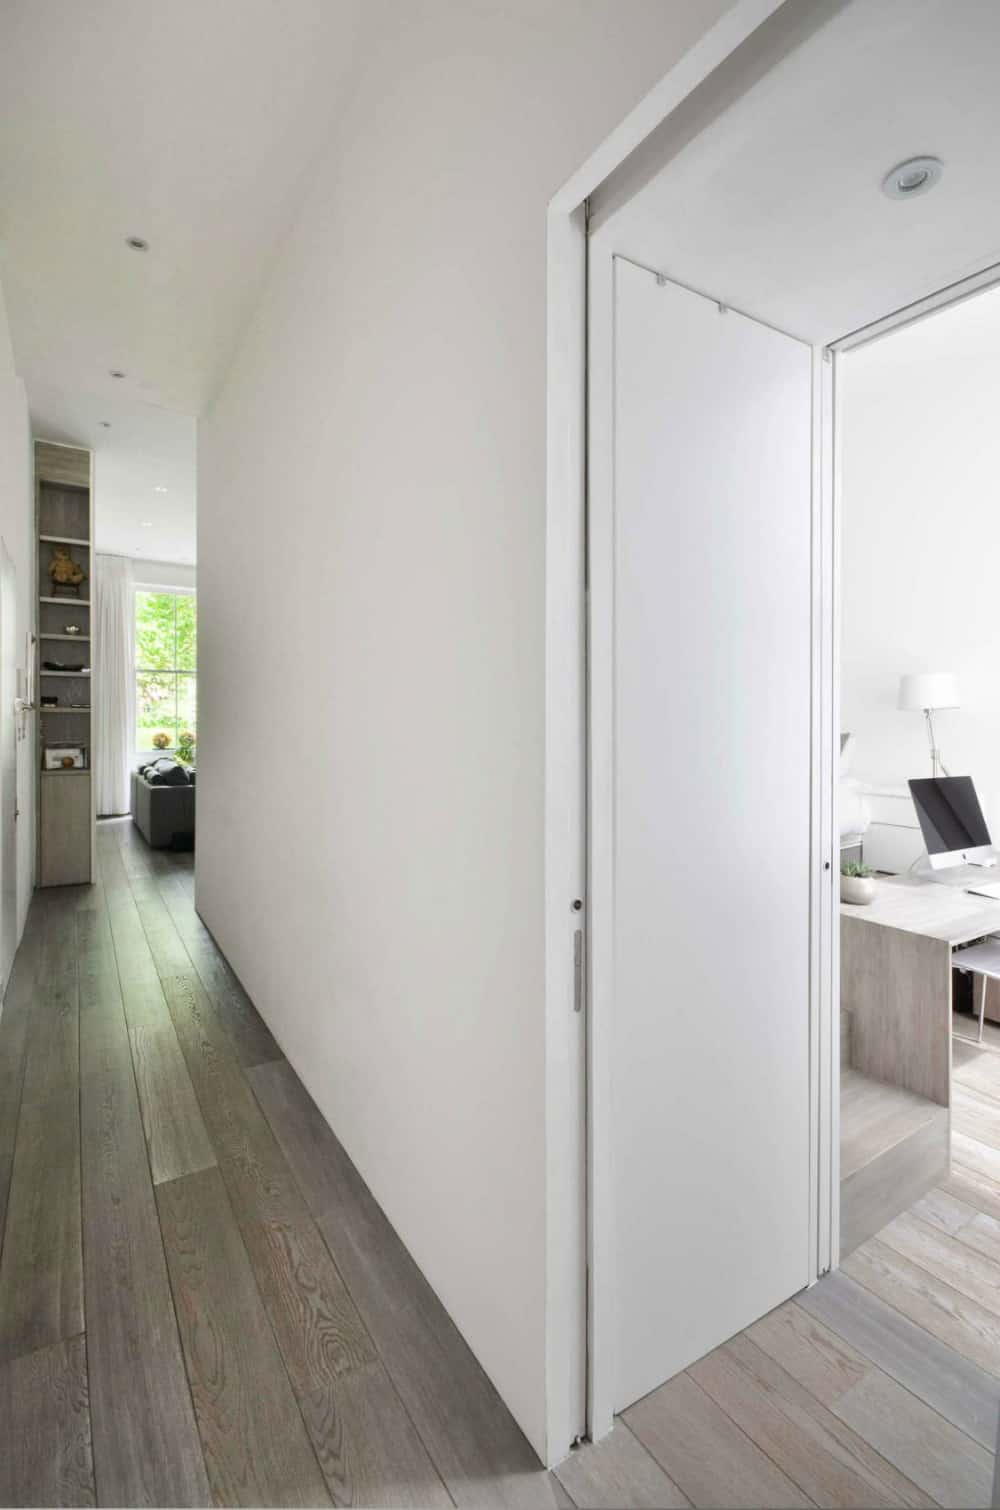 A narrow corridor leads from the living area to the bedroom